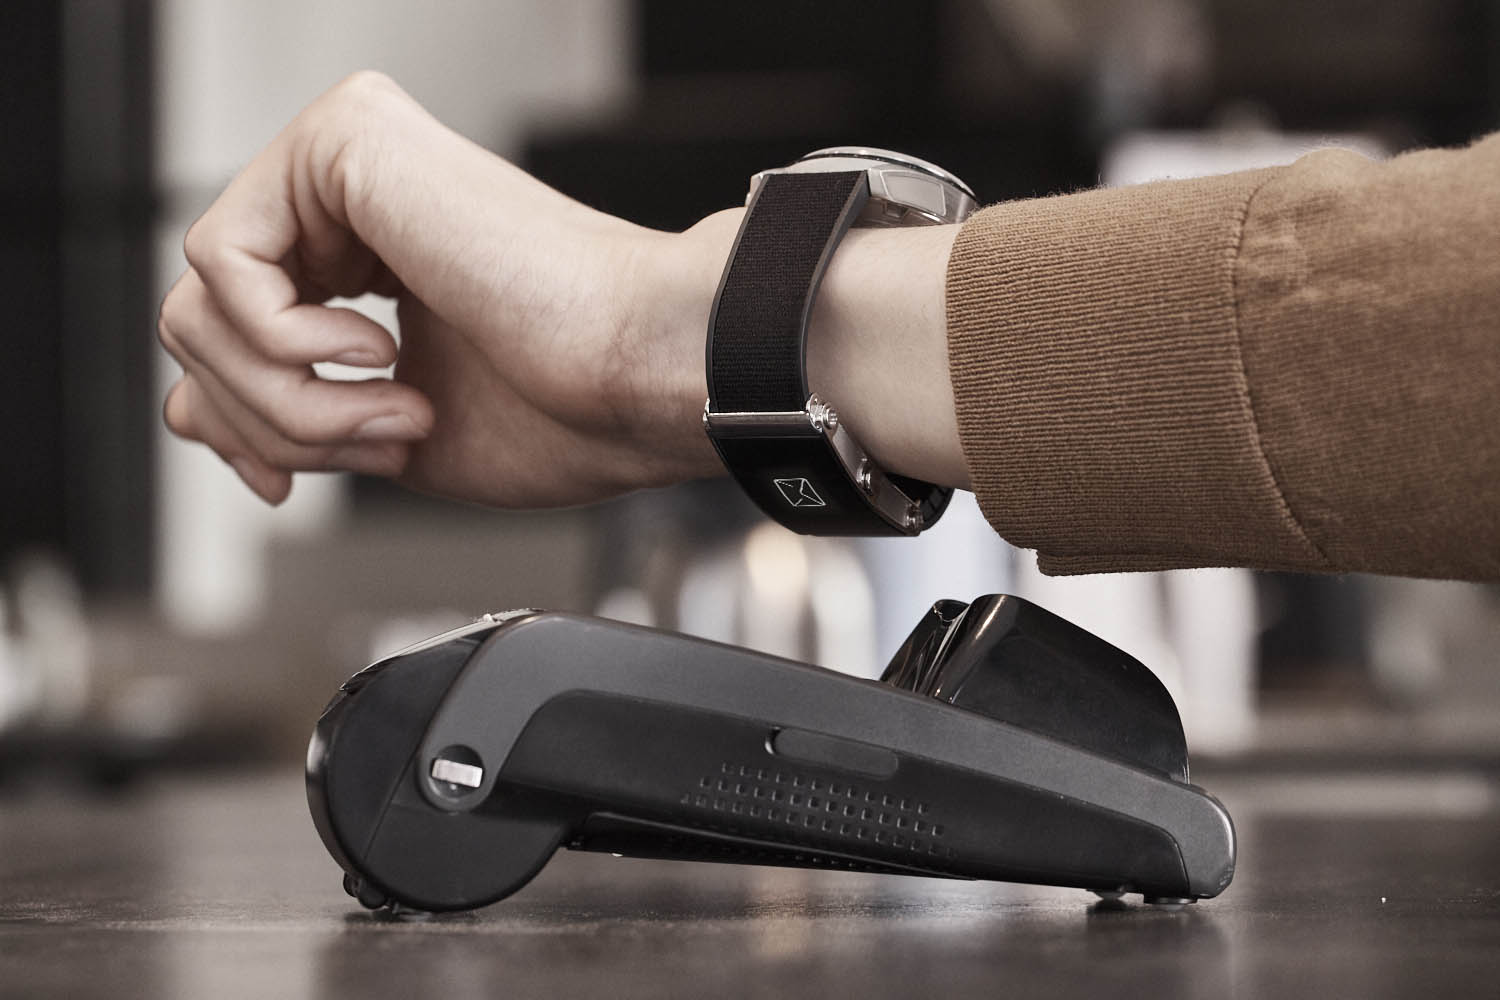 New NXP mWallet 2GO partnership with Mastercard and Visa enables Montblanc's TWIN smart strip